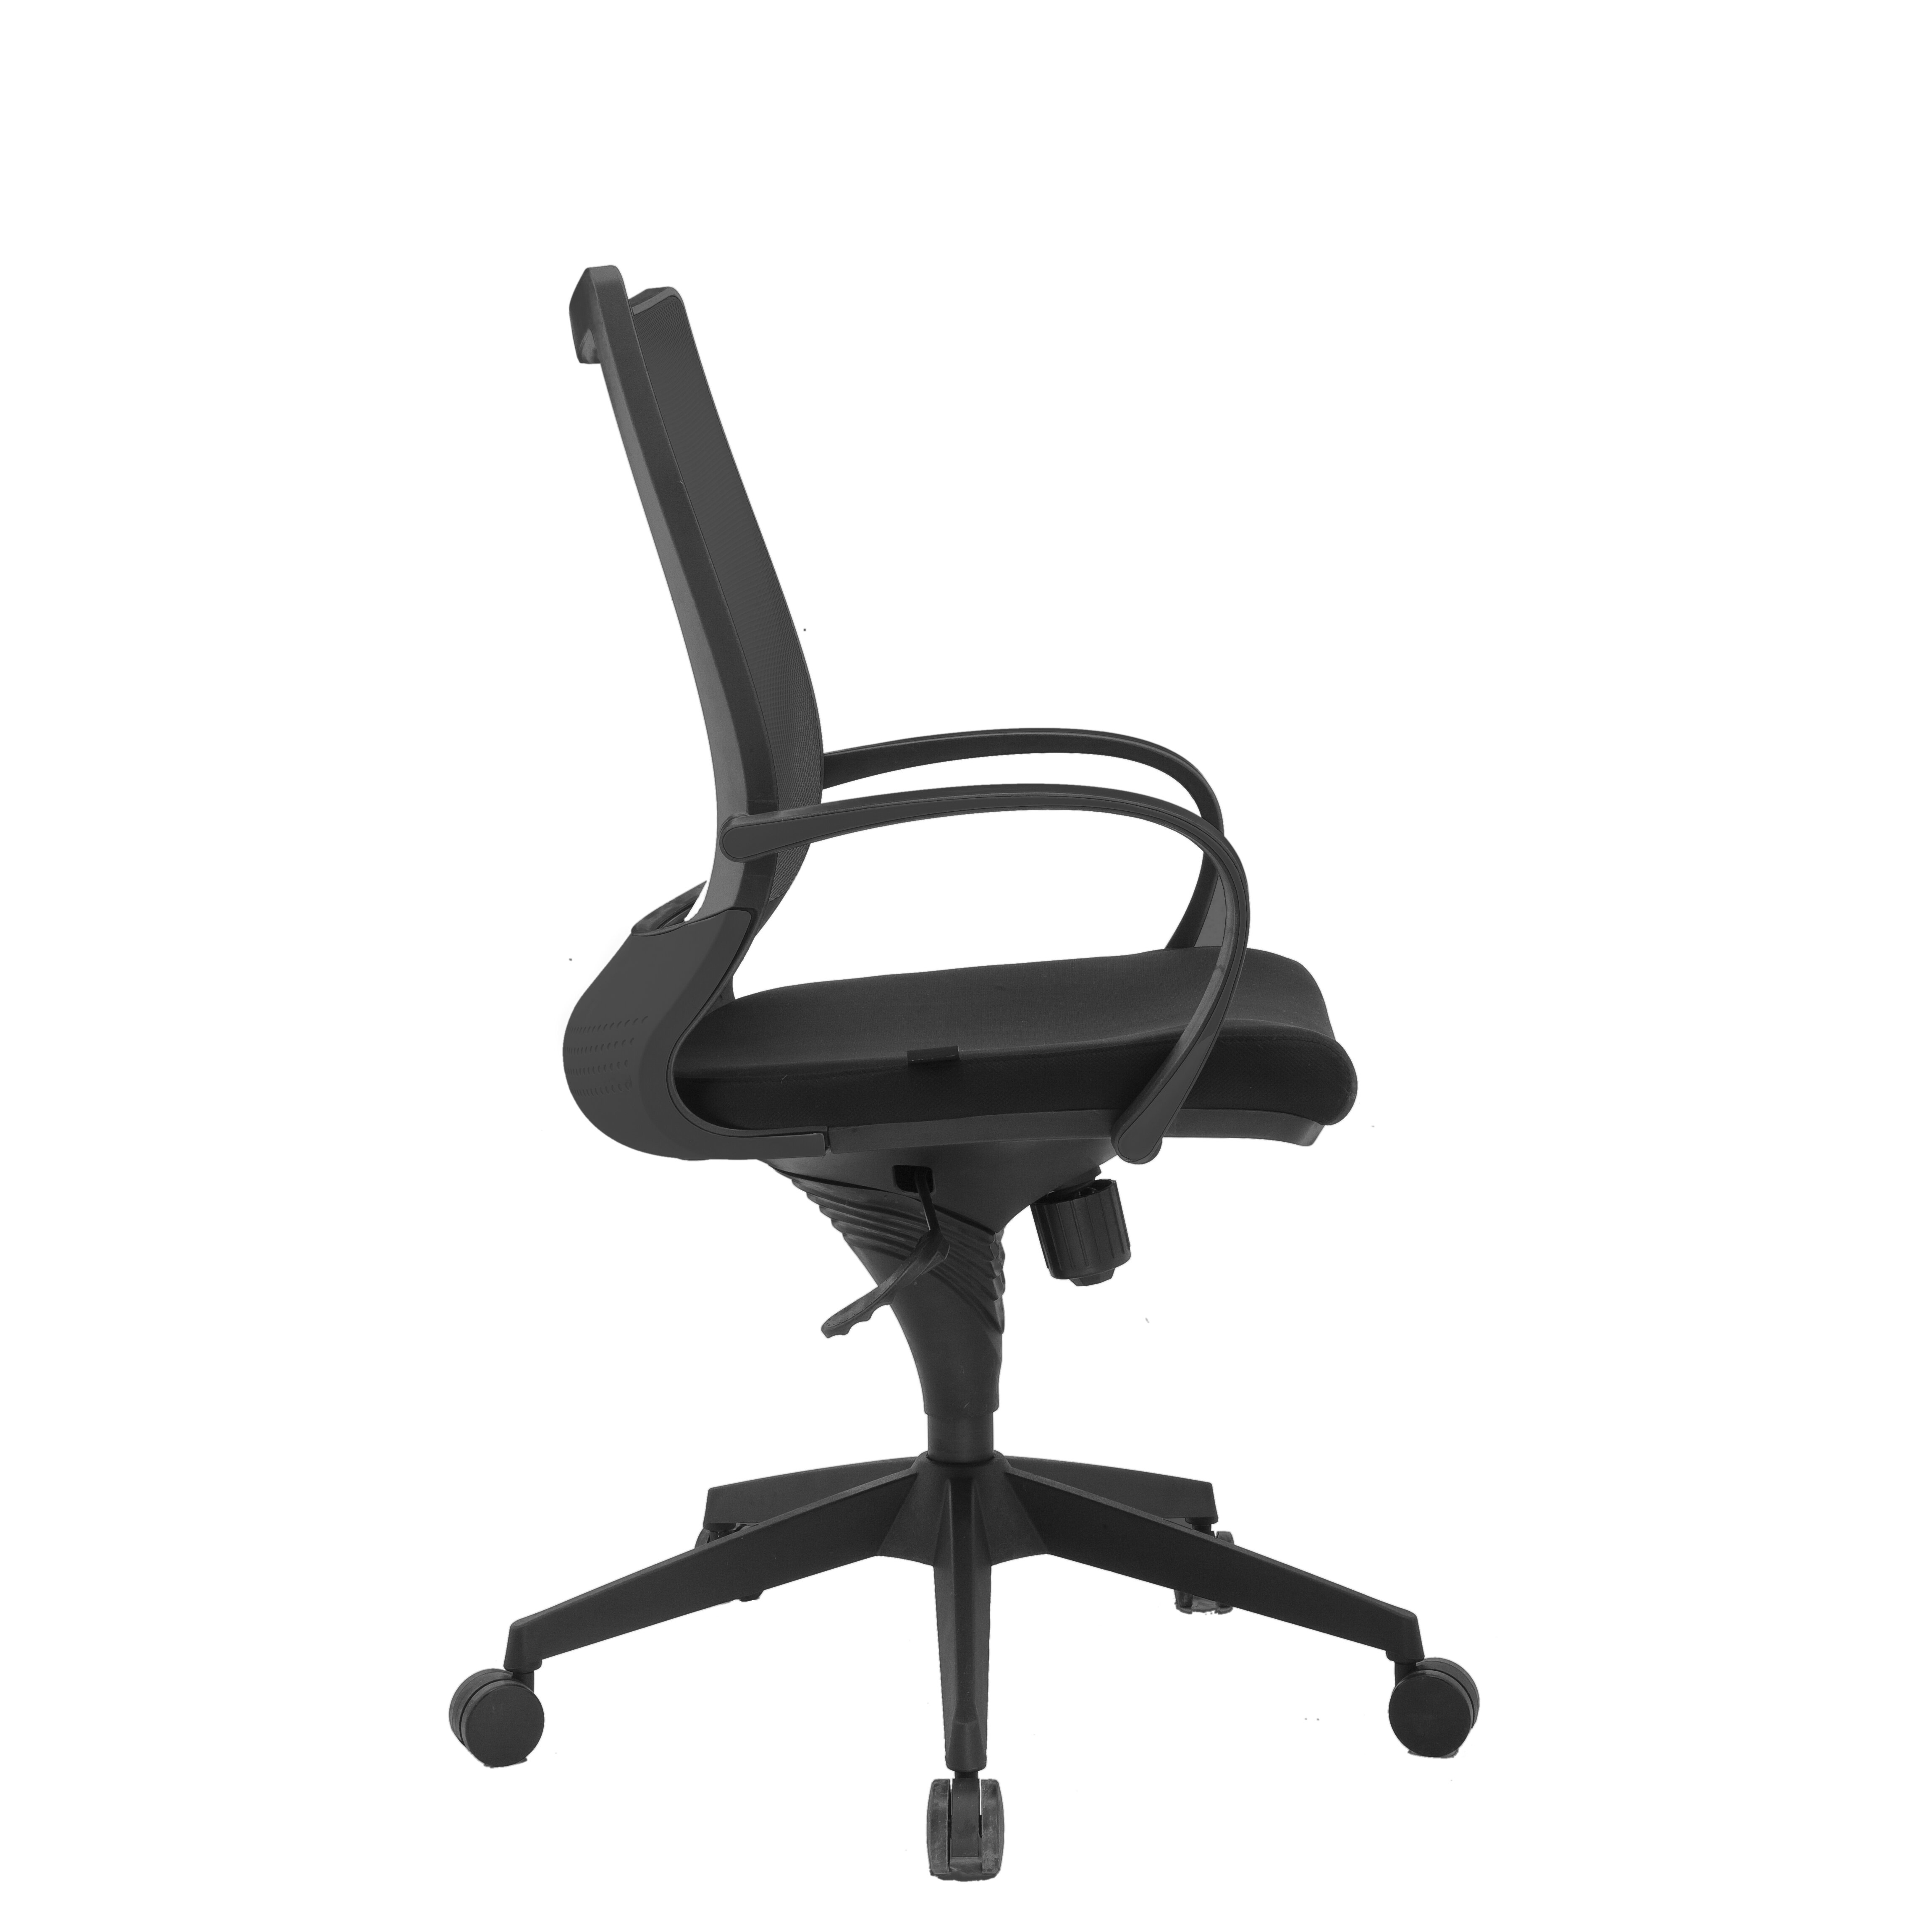 woos kitchens with Woodstock Marketing Sweetwater Mid Back Mesh Task Chair With Arms Sc501 264 Woos1005 on Tawoosgroup further Stools LF248BST WOOS1016 furthermore Tawoosgroup further 251497960420227676 likewise Narrow Kitchen Design Idea.